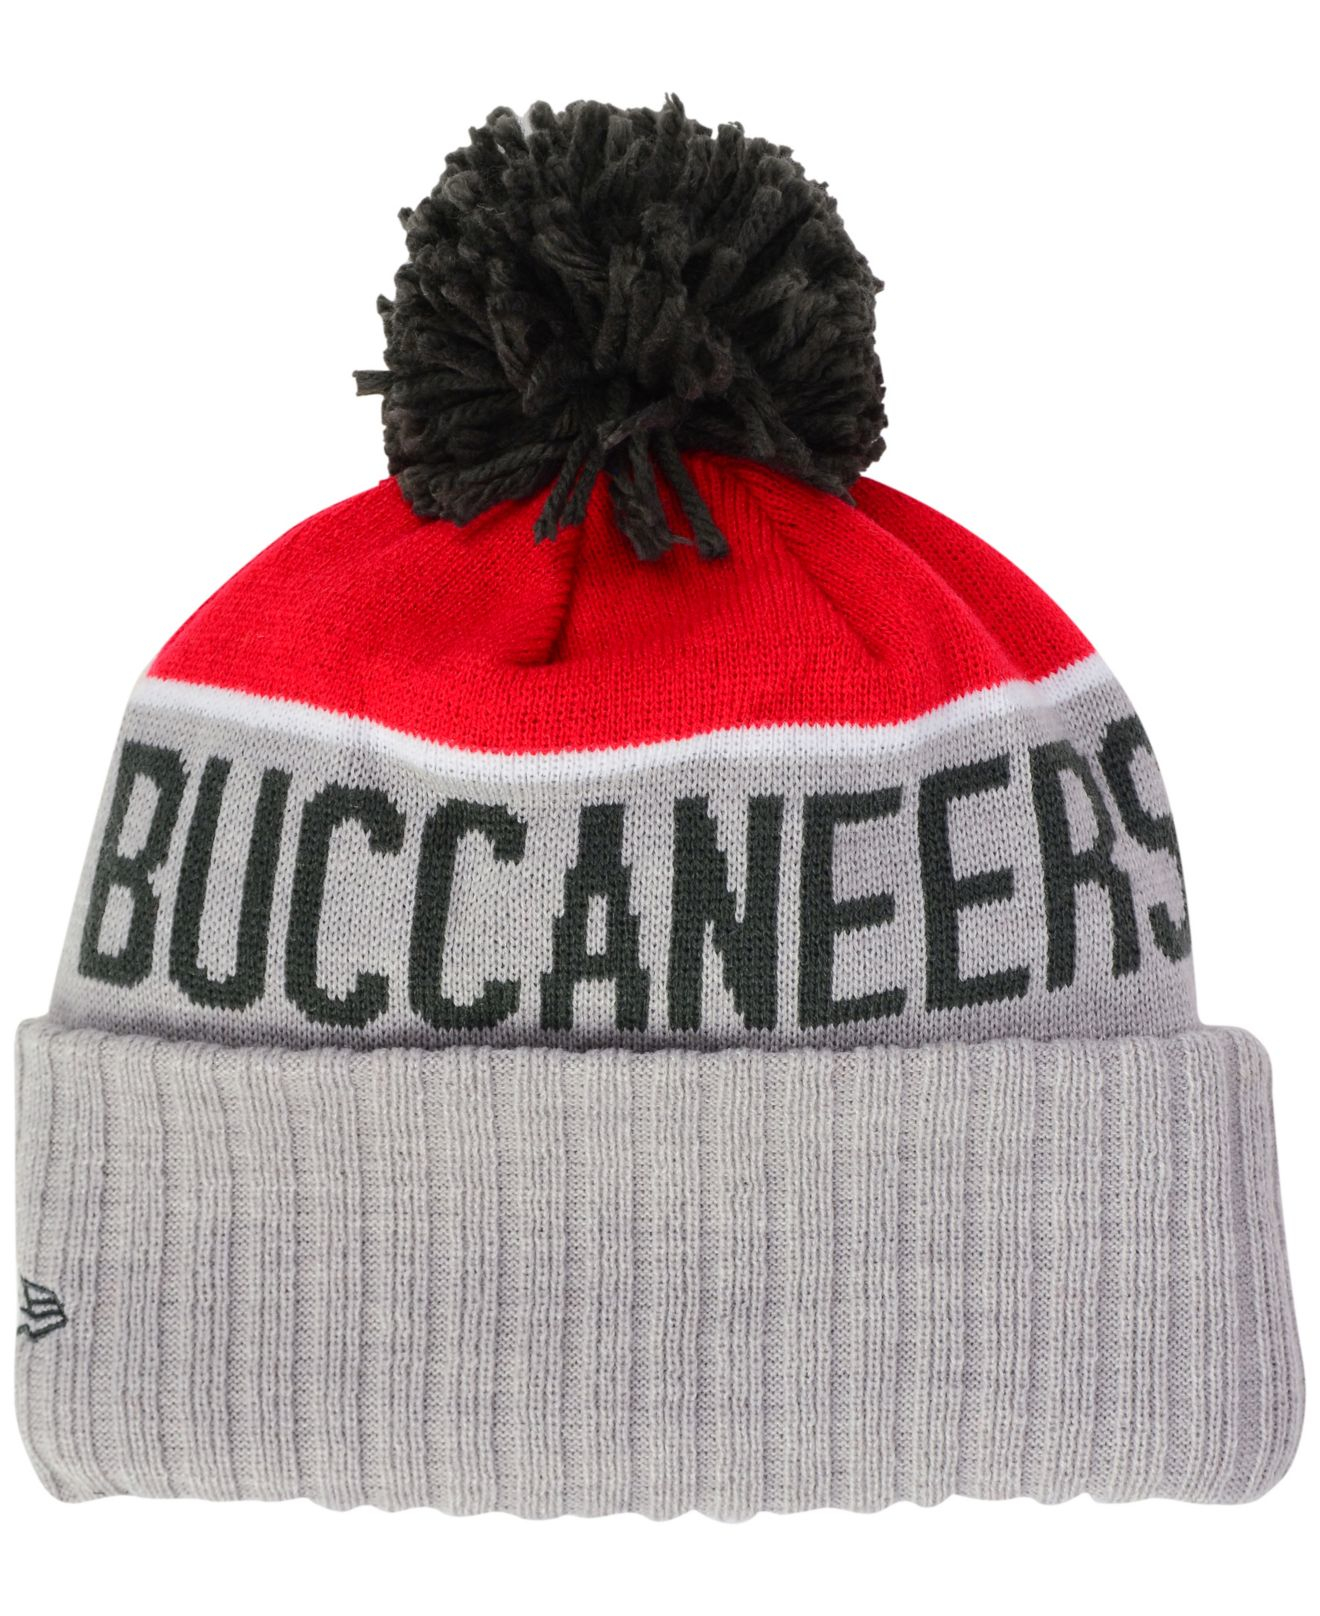 online store ba879 787fc where can i buy tampa bay buccaneers super bowl hat 247b6 da5c4